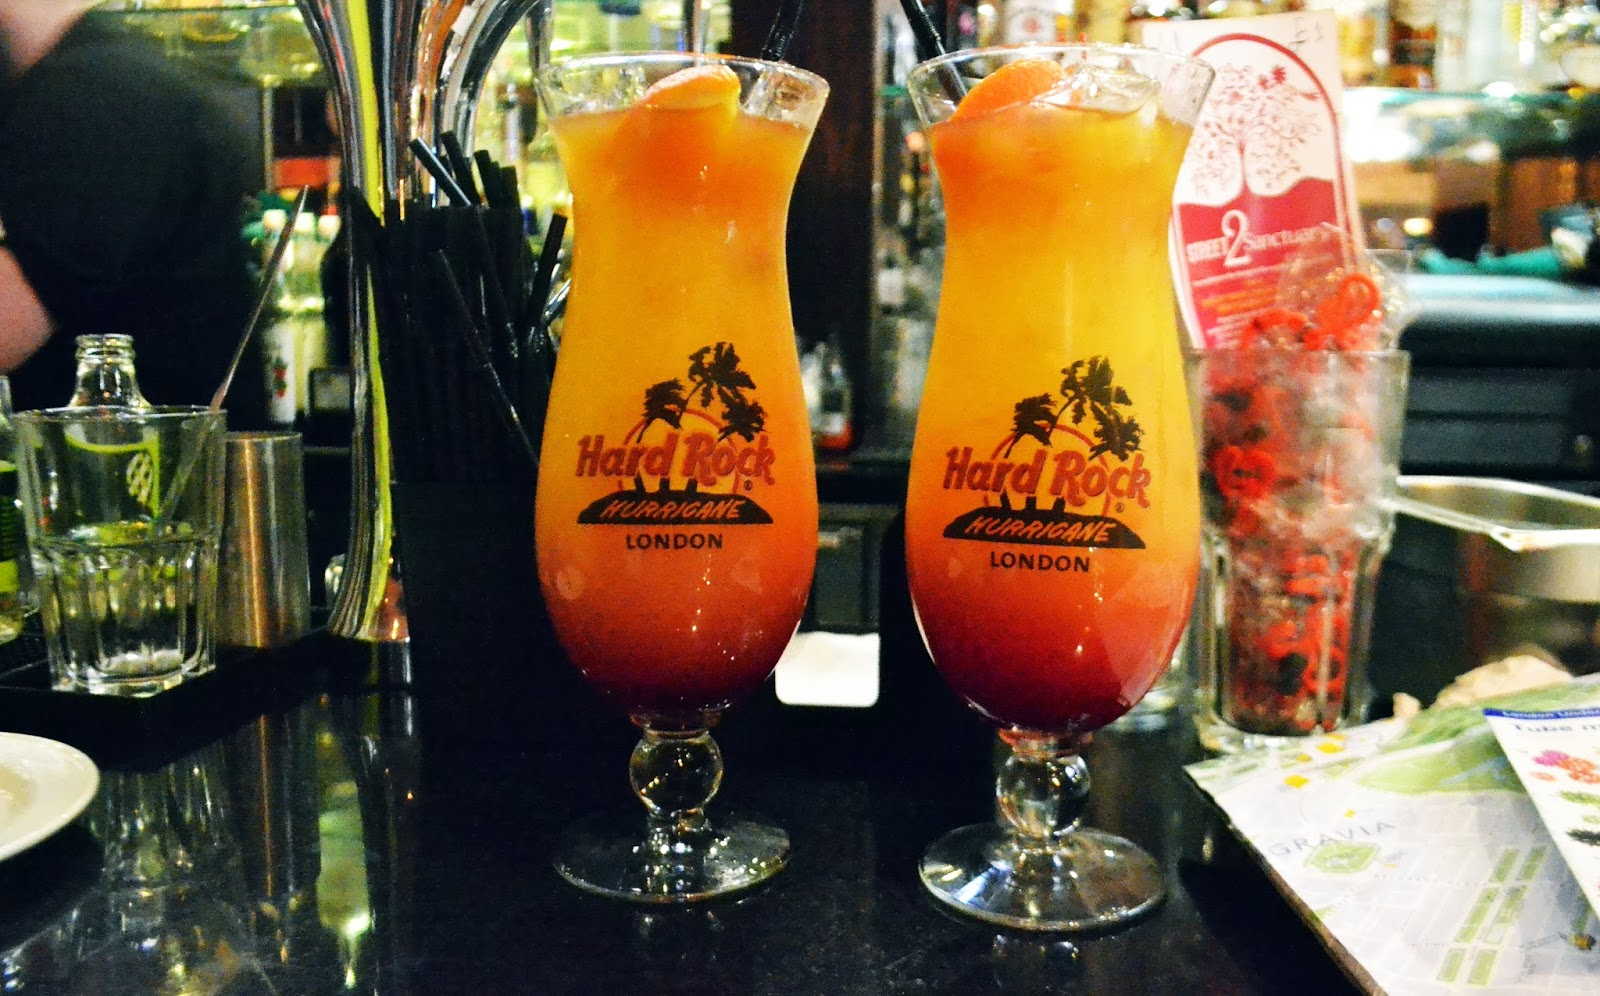 two large cocktails sitting on the bar. the cocktails are a mixture of red and yellow colours